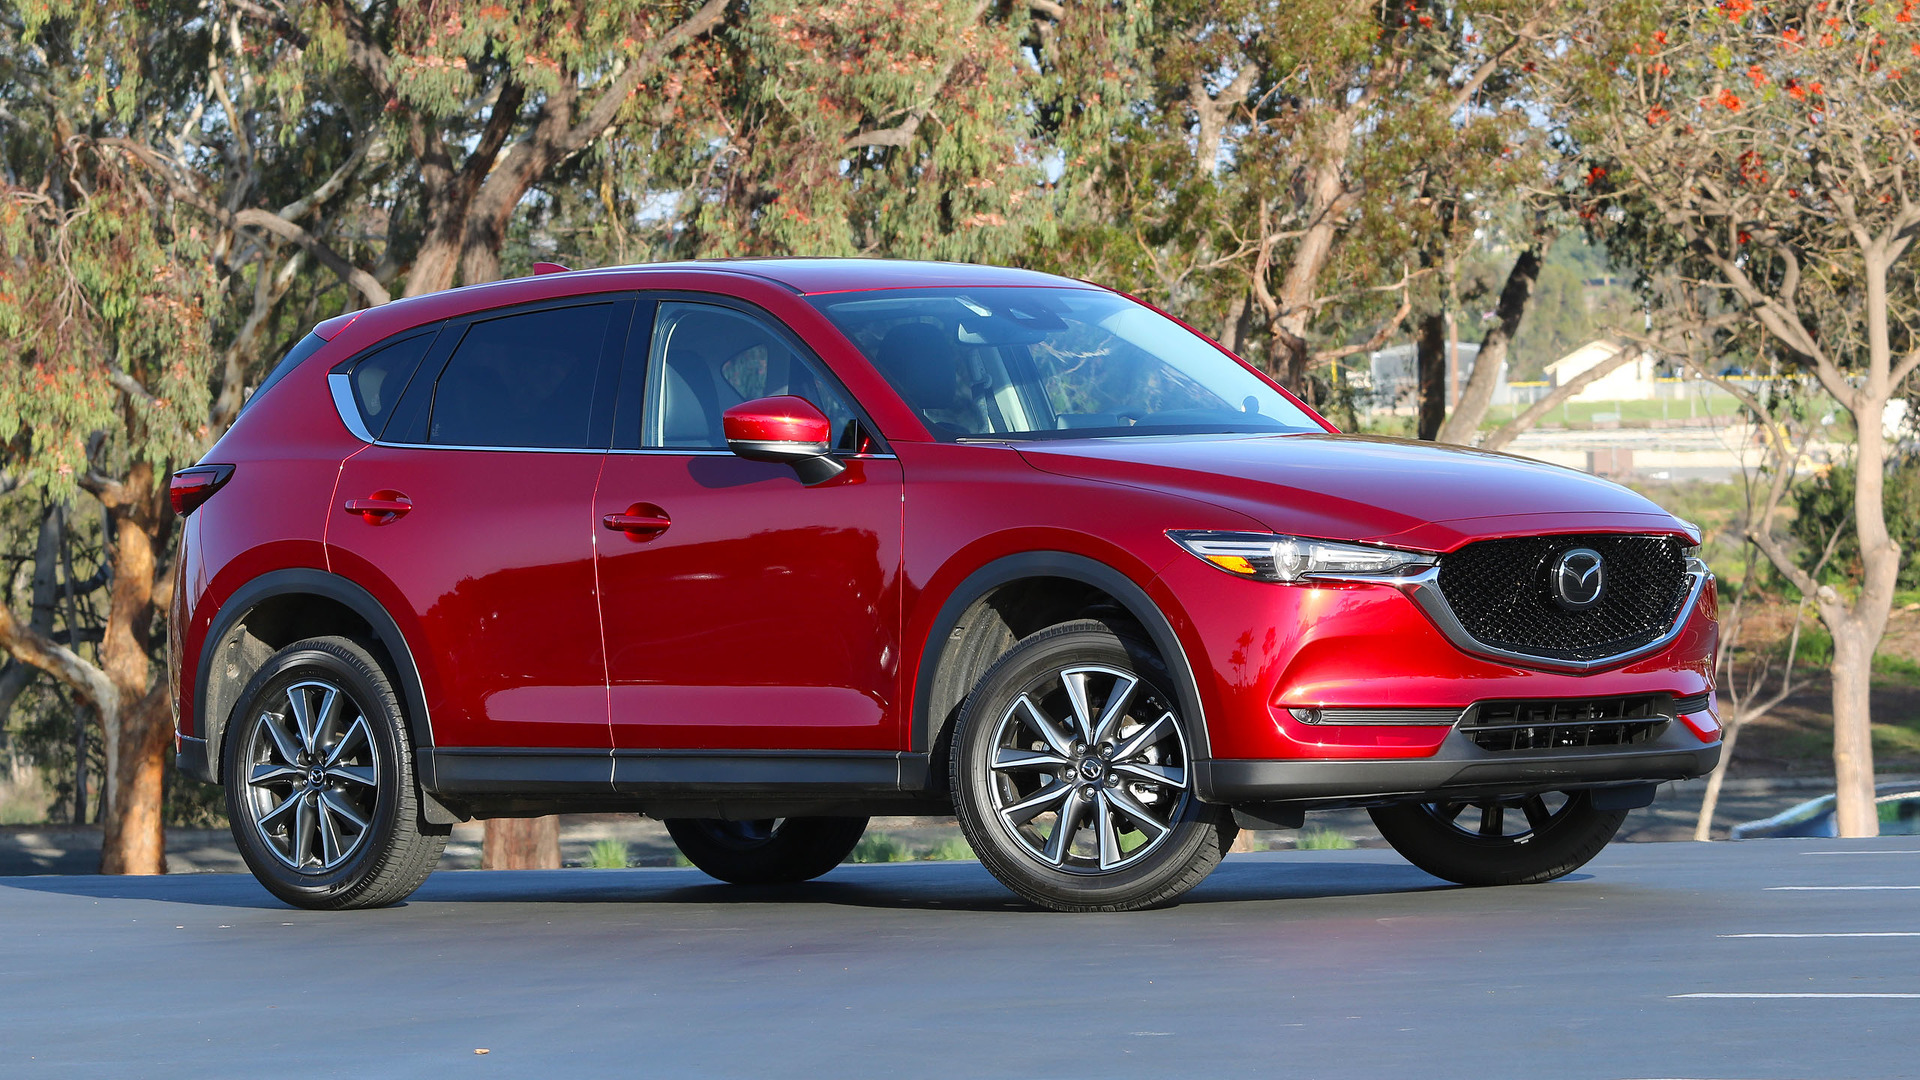 2017 mazda cx-5 first drive: now with fewer downsides